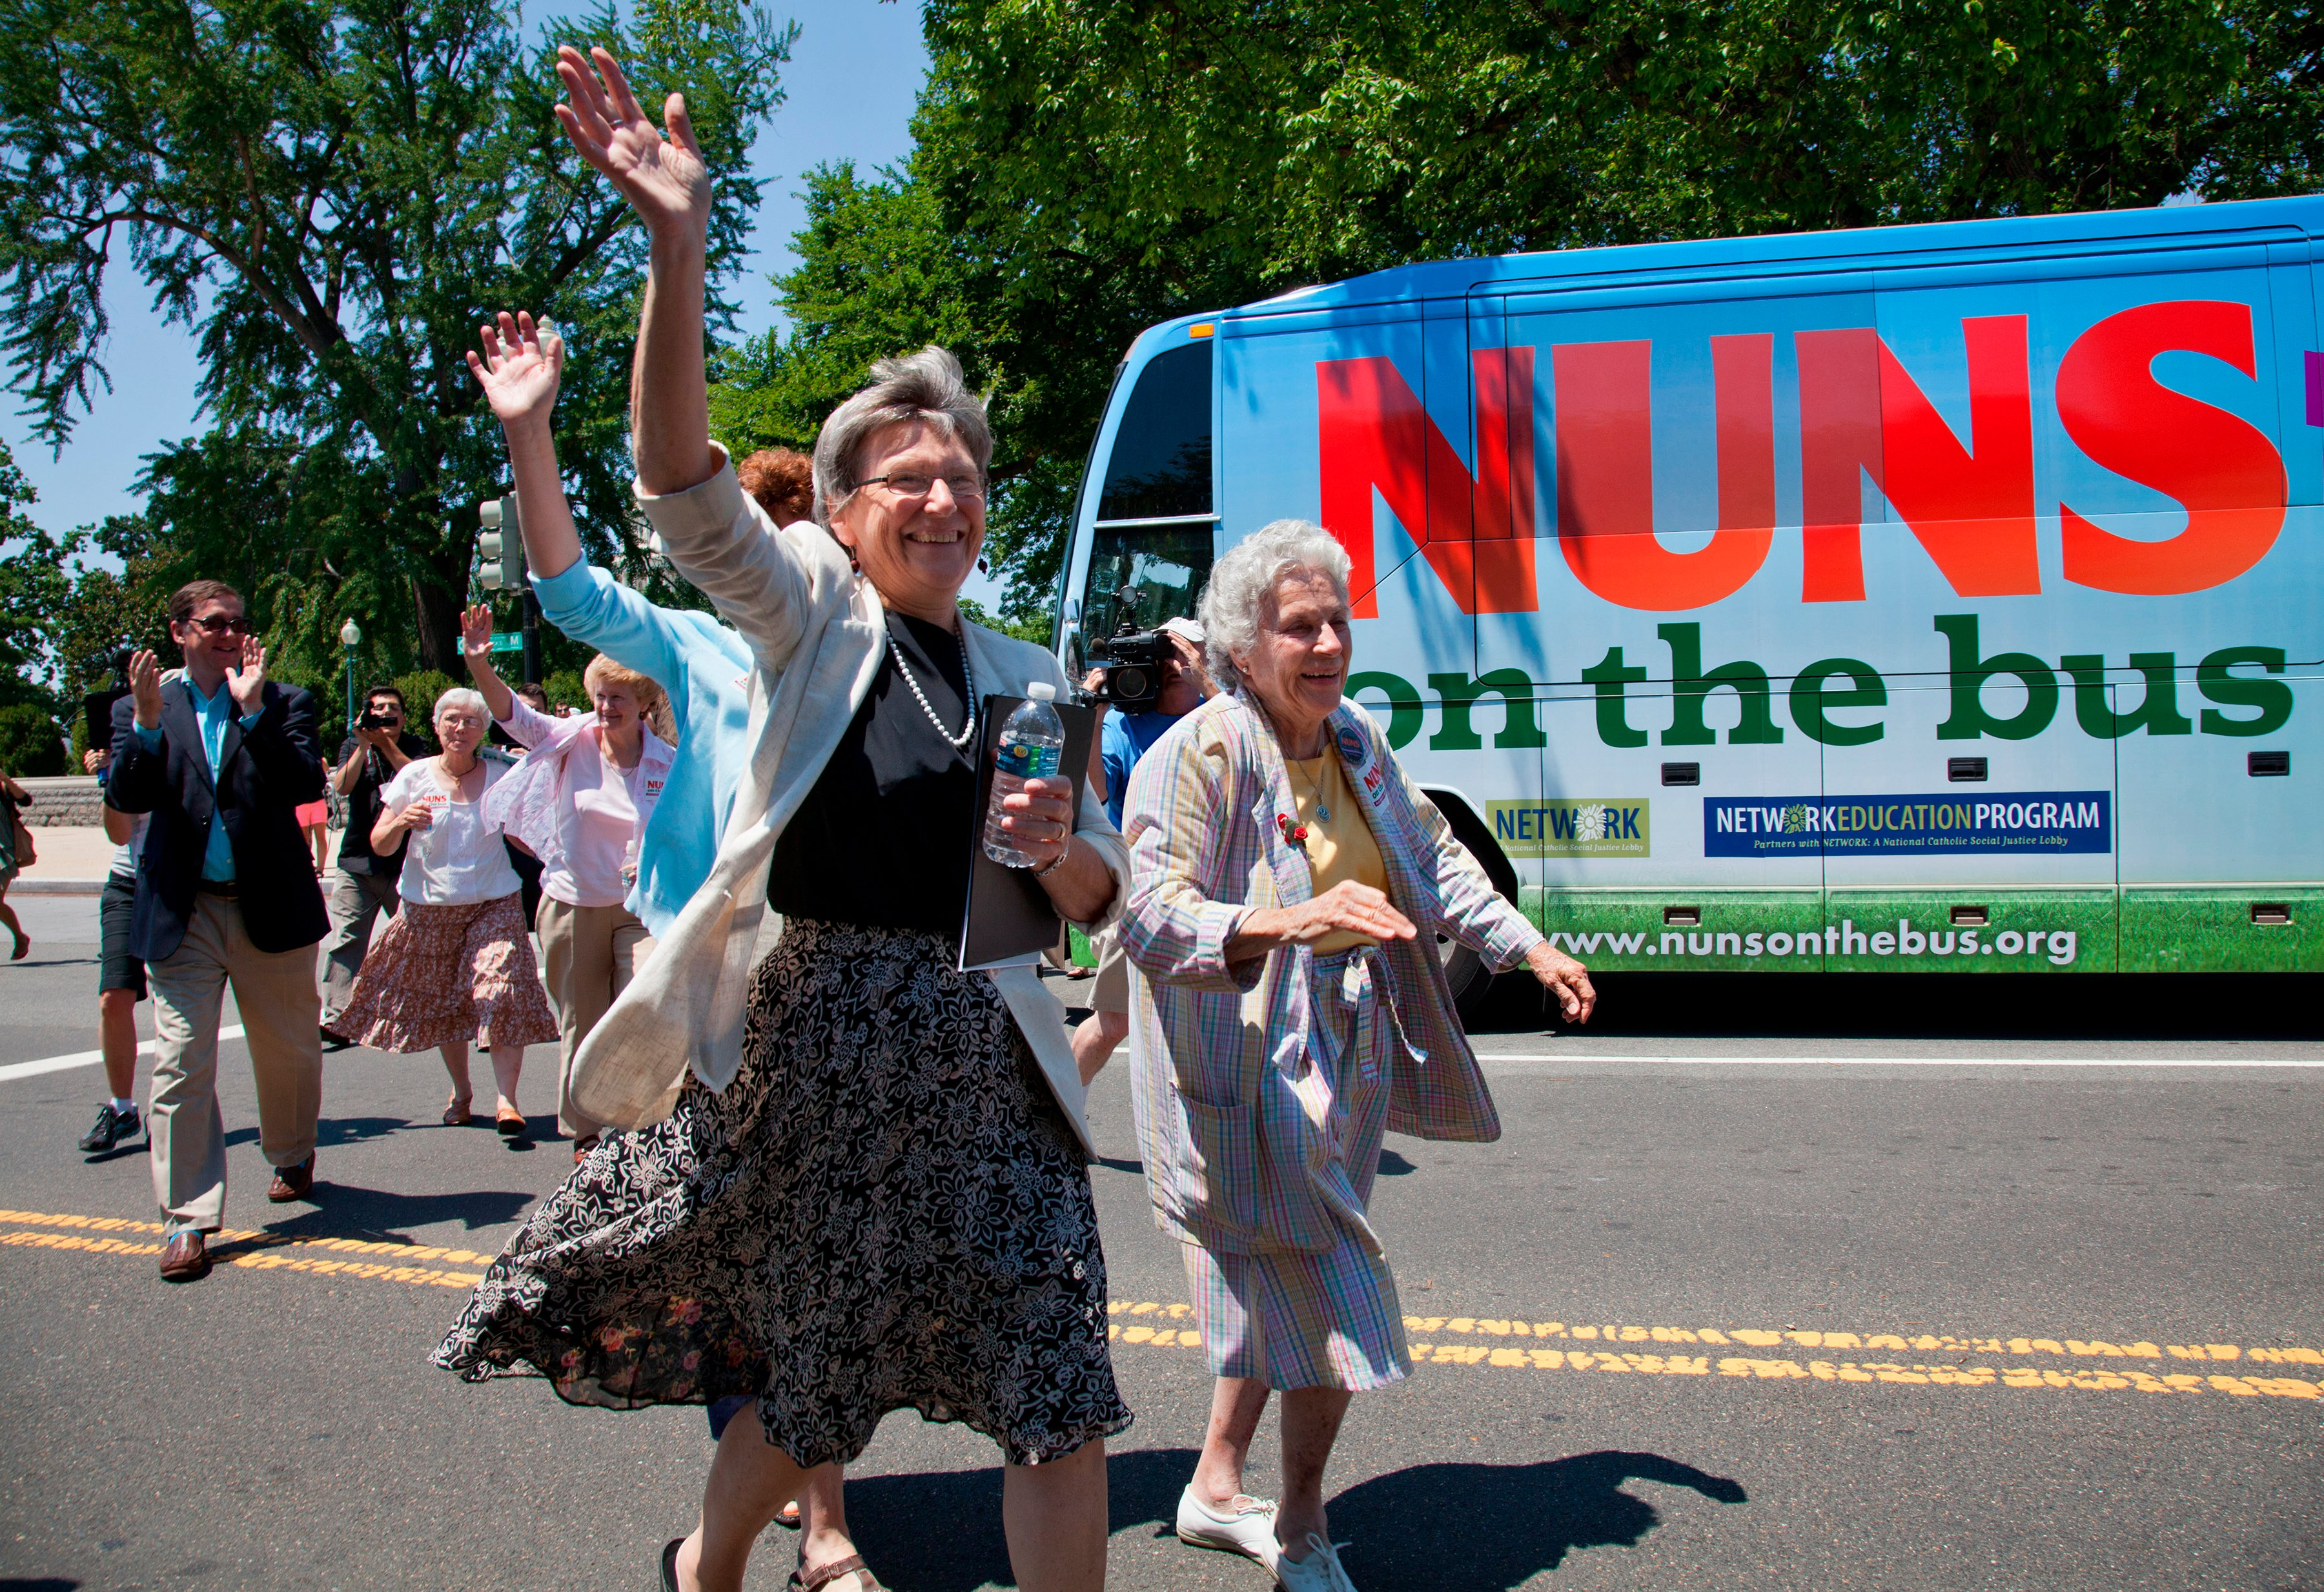 """Sister Simone Campbell, left, and Sister Diane Donoghue, right, lead the way as the the """"Nuns on the Bus"""" arrive on Capitol Hill in Washington, on July 2, 2012, after a nine-state tour to bring stories of hardship to Congress. Sister Simone Campbell is executive director of Network, a liberal Catholic social justice lobby in Washington. (AP Photo/J. Scott Applewhite)"""